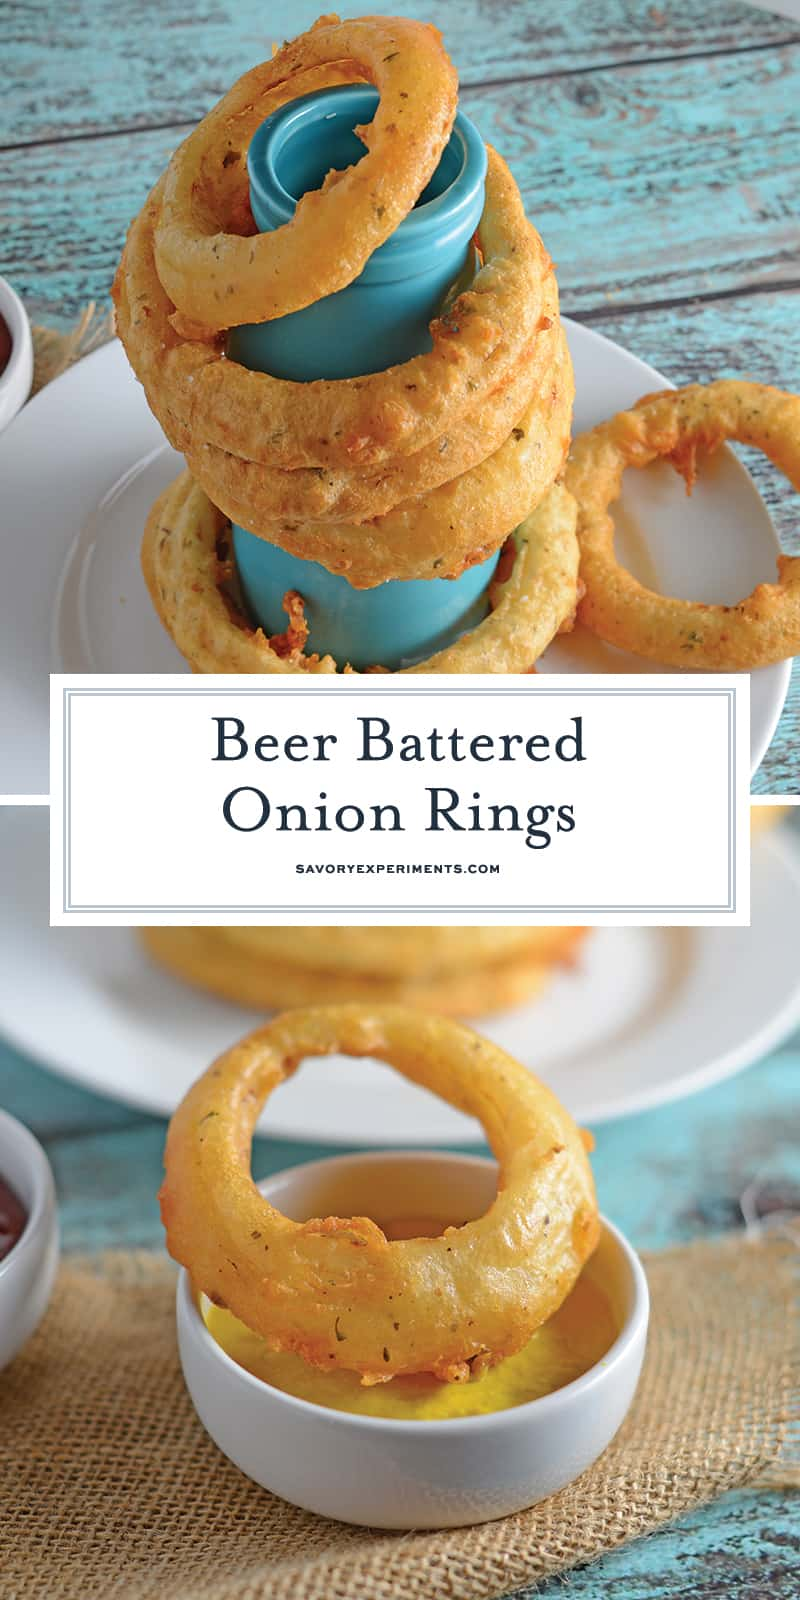 Beer Battered Onion Rings gives you crunchy and crispy homemade beer battered onion rings. Dip them in a spicy chipotle remoulade or enjoy them alone. #homemadeonionrings #friedonionrings #beerbatteredonionrings www.savoryexperiments.com